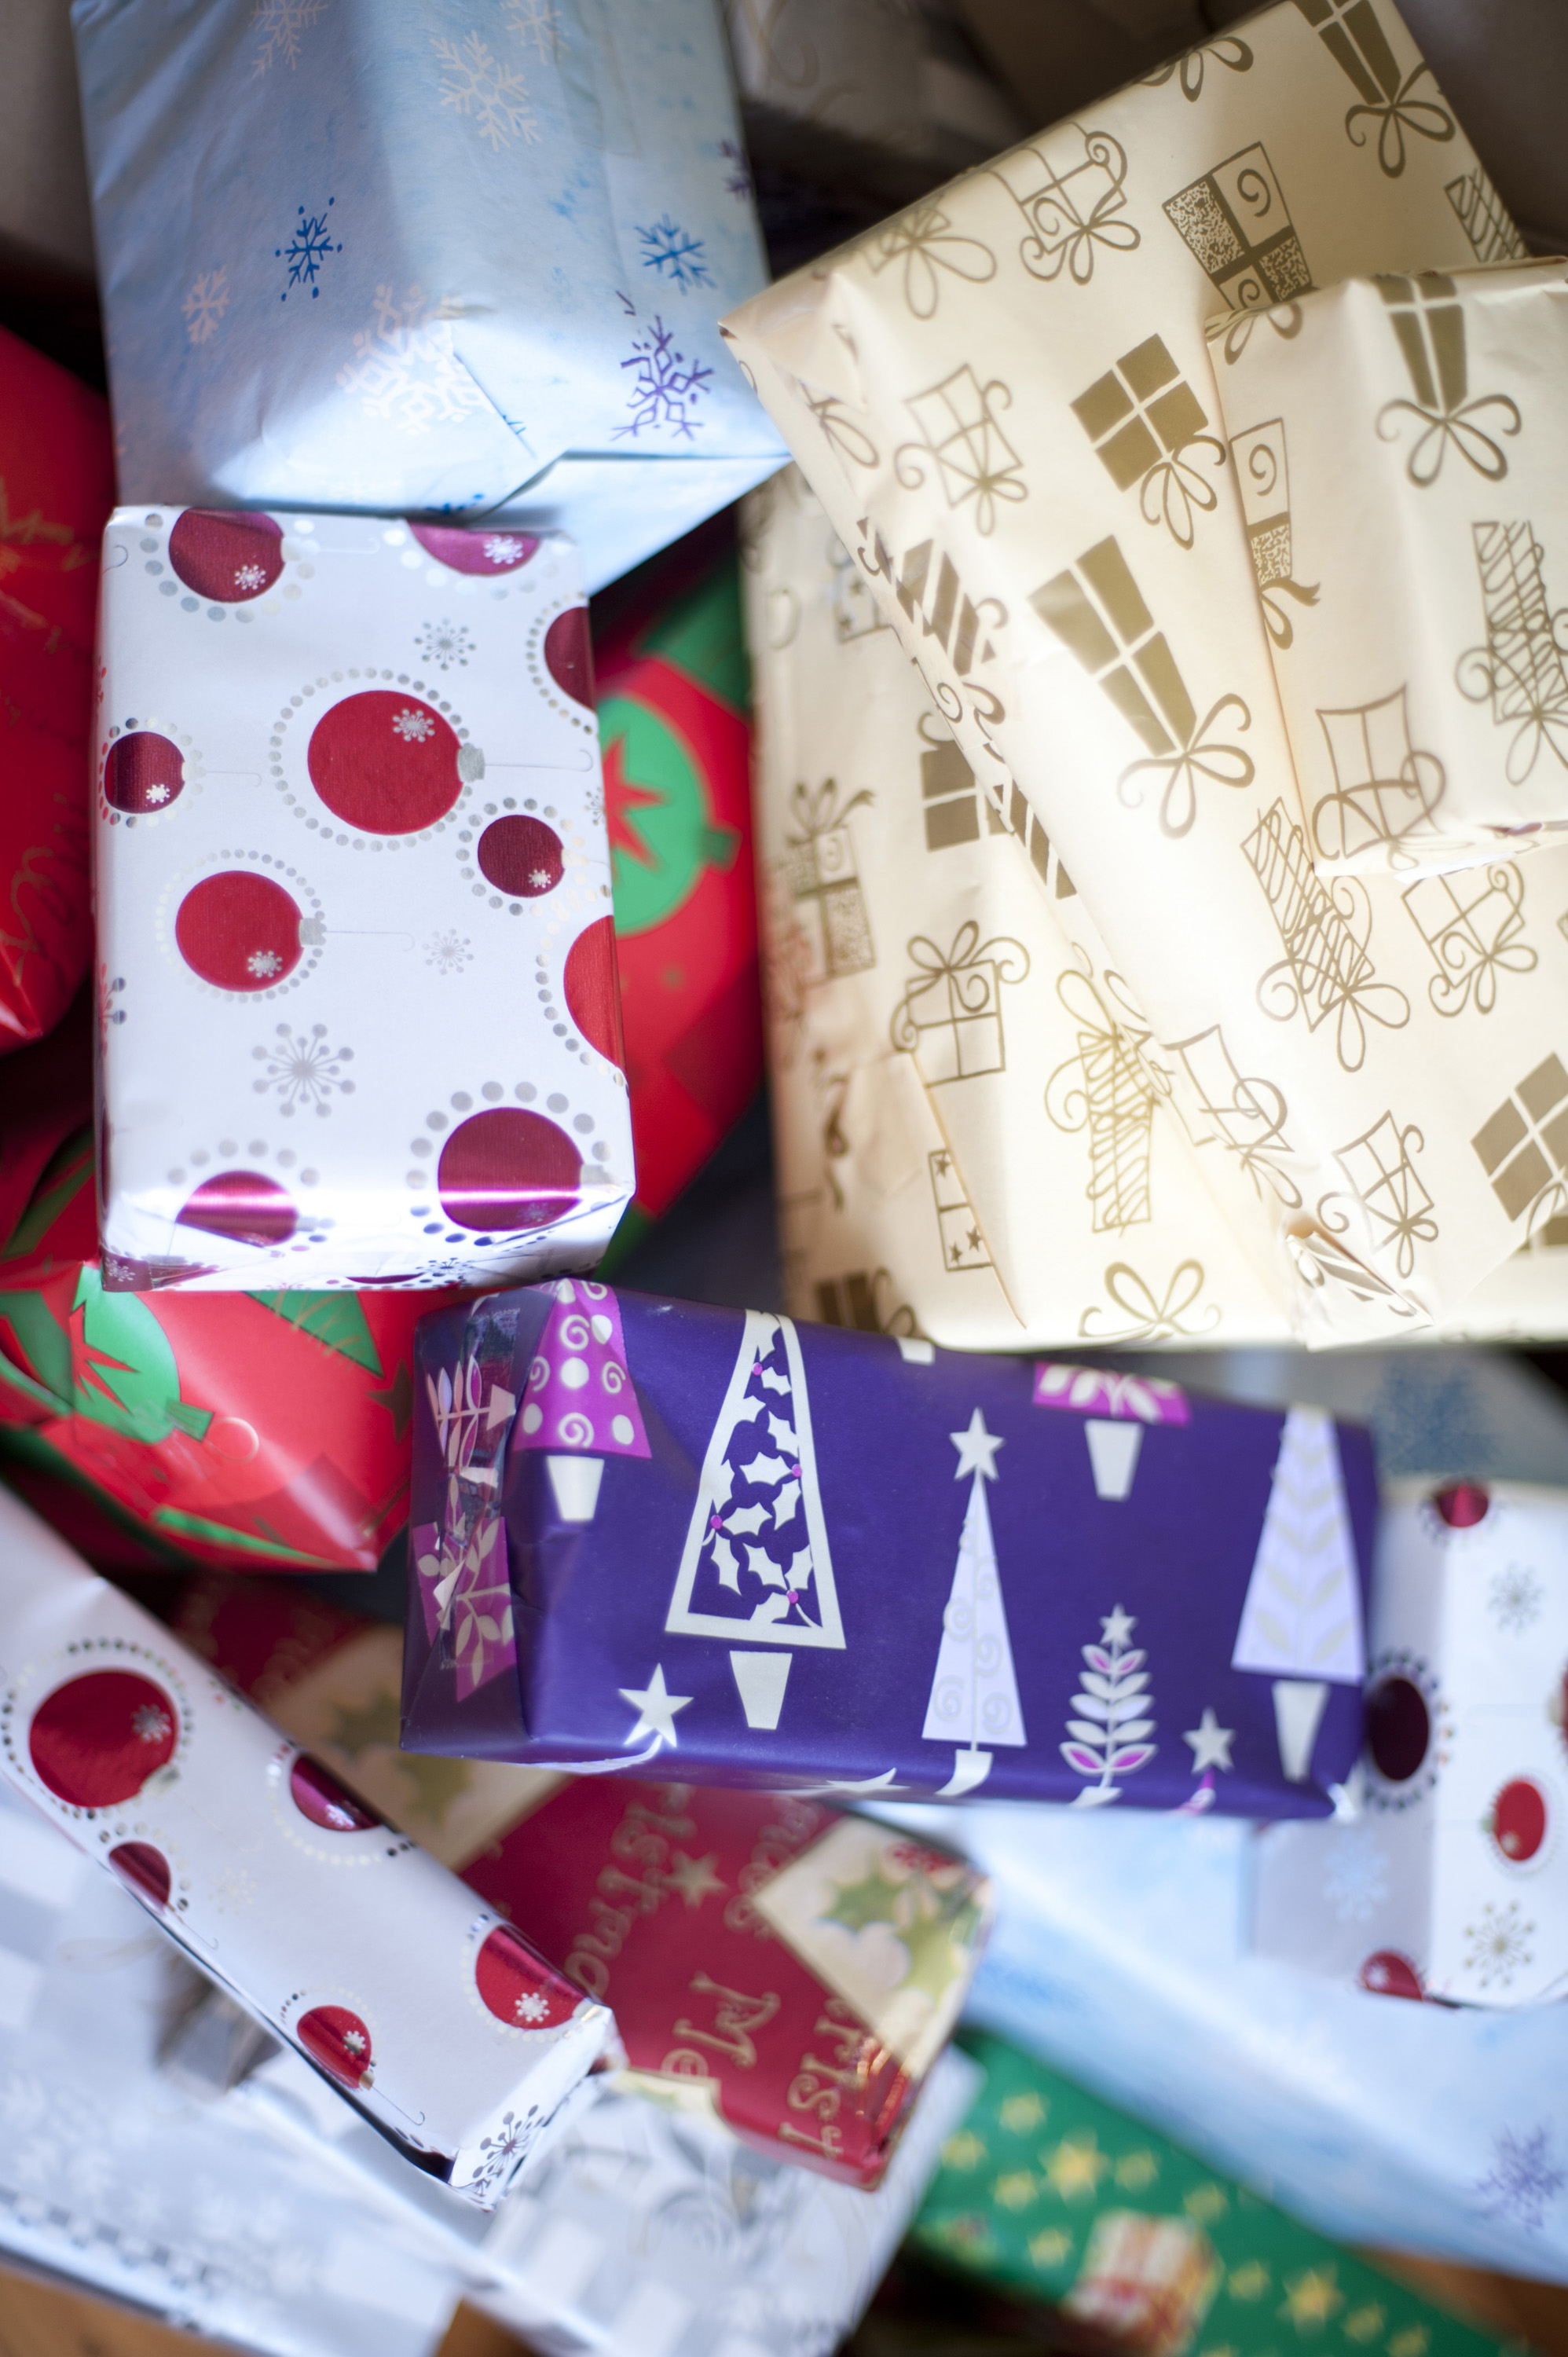 Close-up of Christmas gift boxes wrapped with decorative paper with seasonal patterns